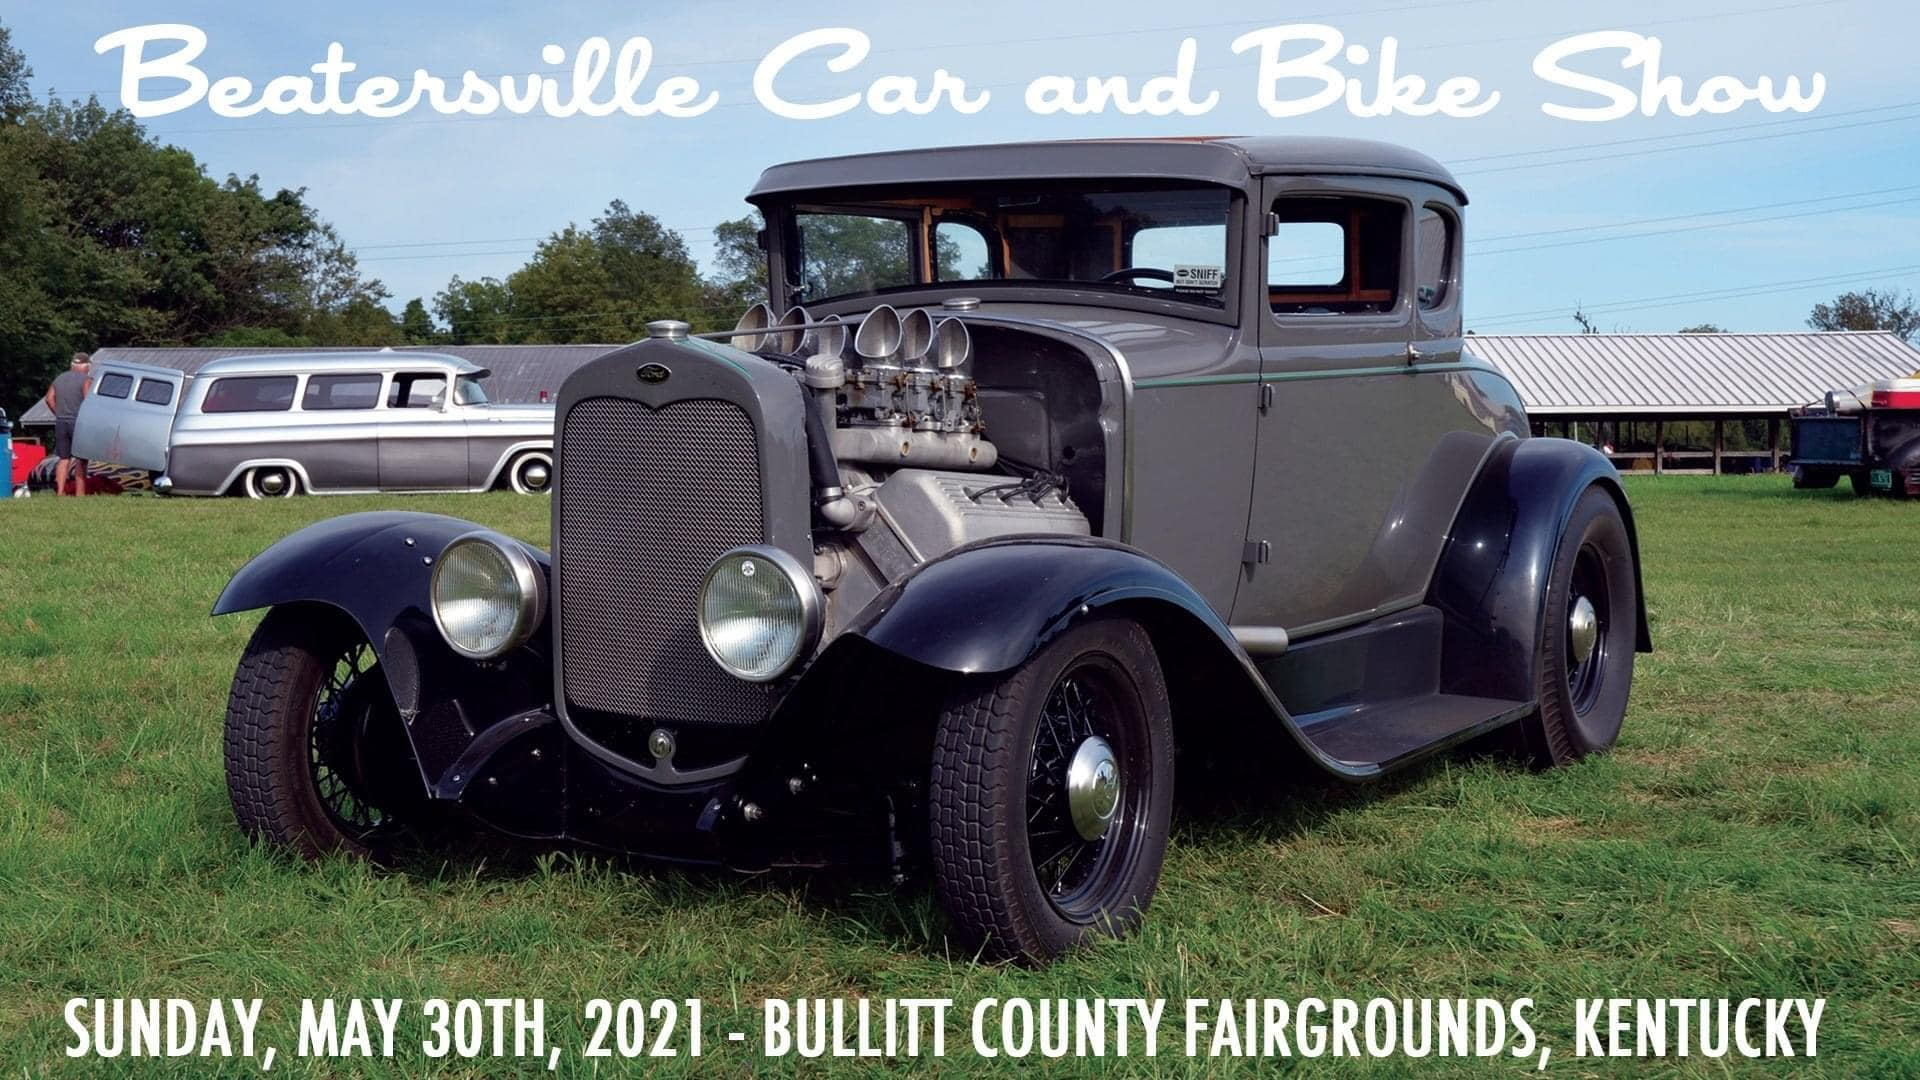 Beatersville Car & Bike Show 2021 MEAN BEARD will be there!